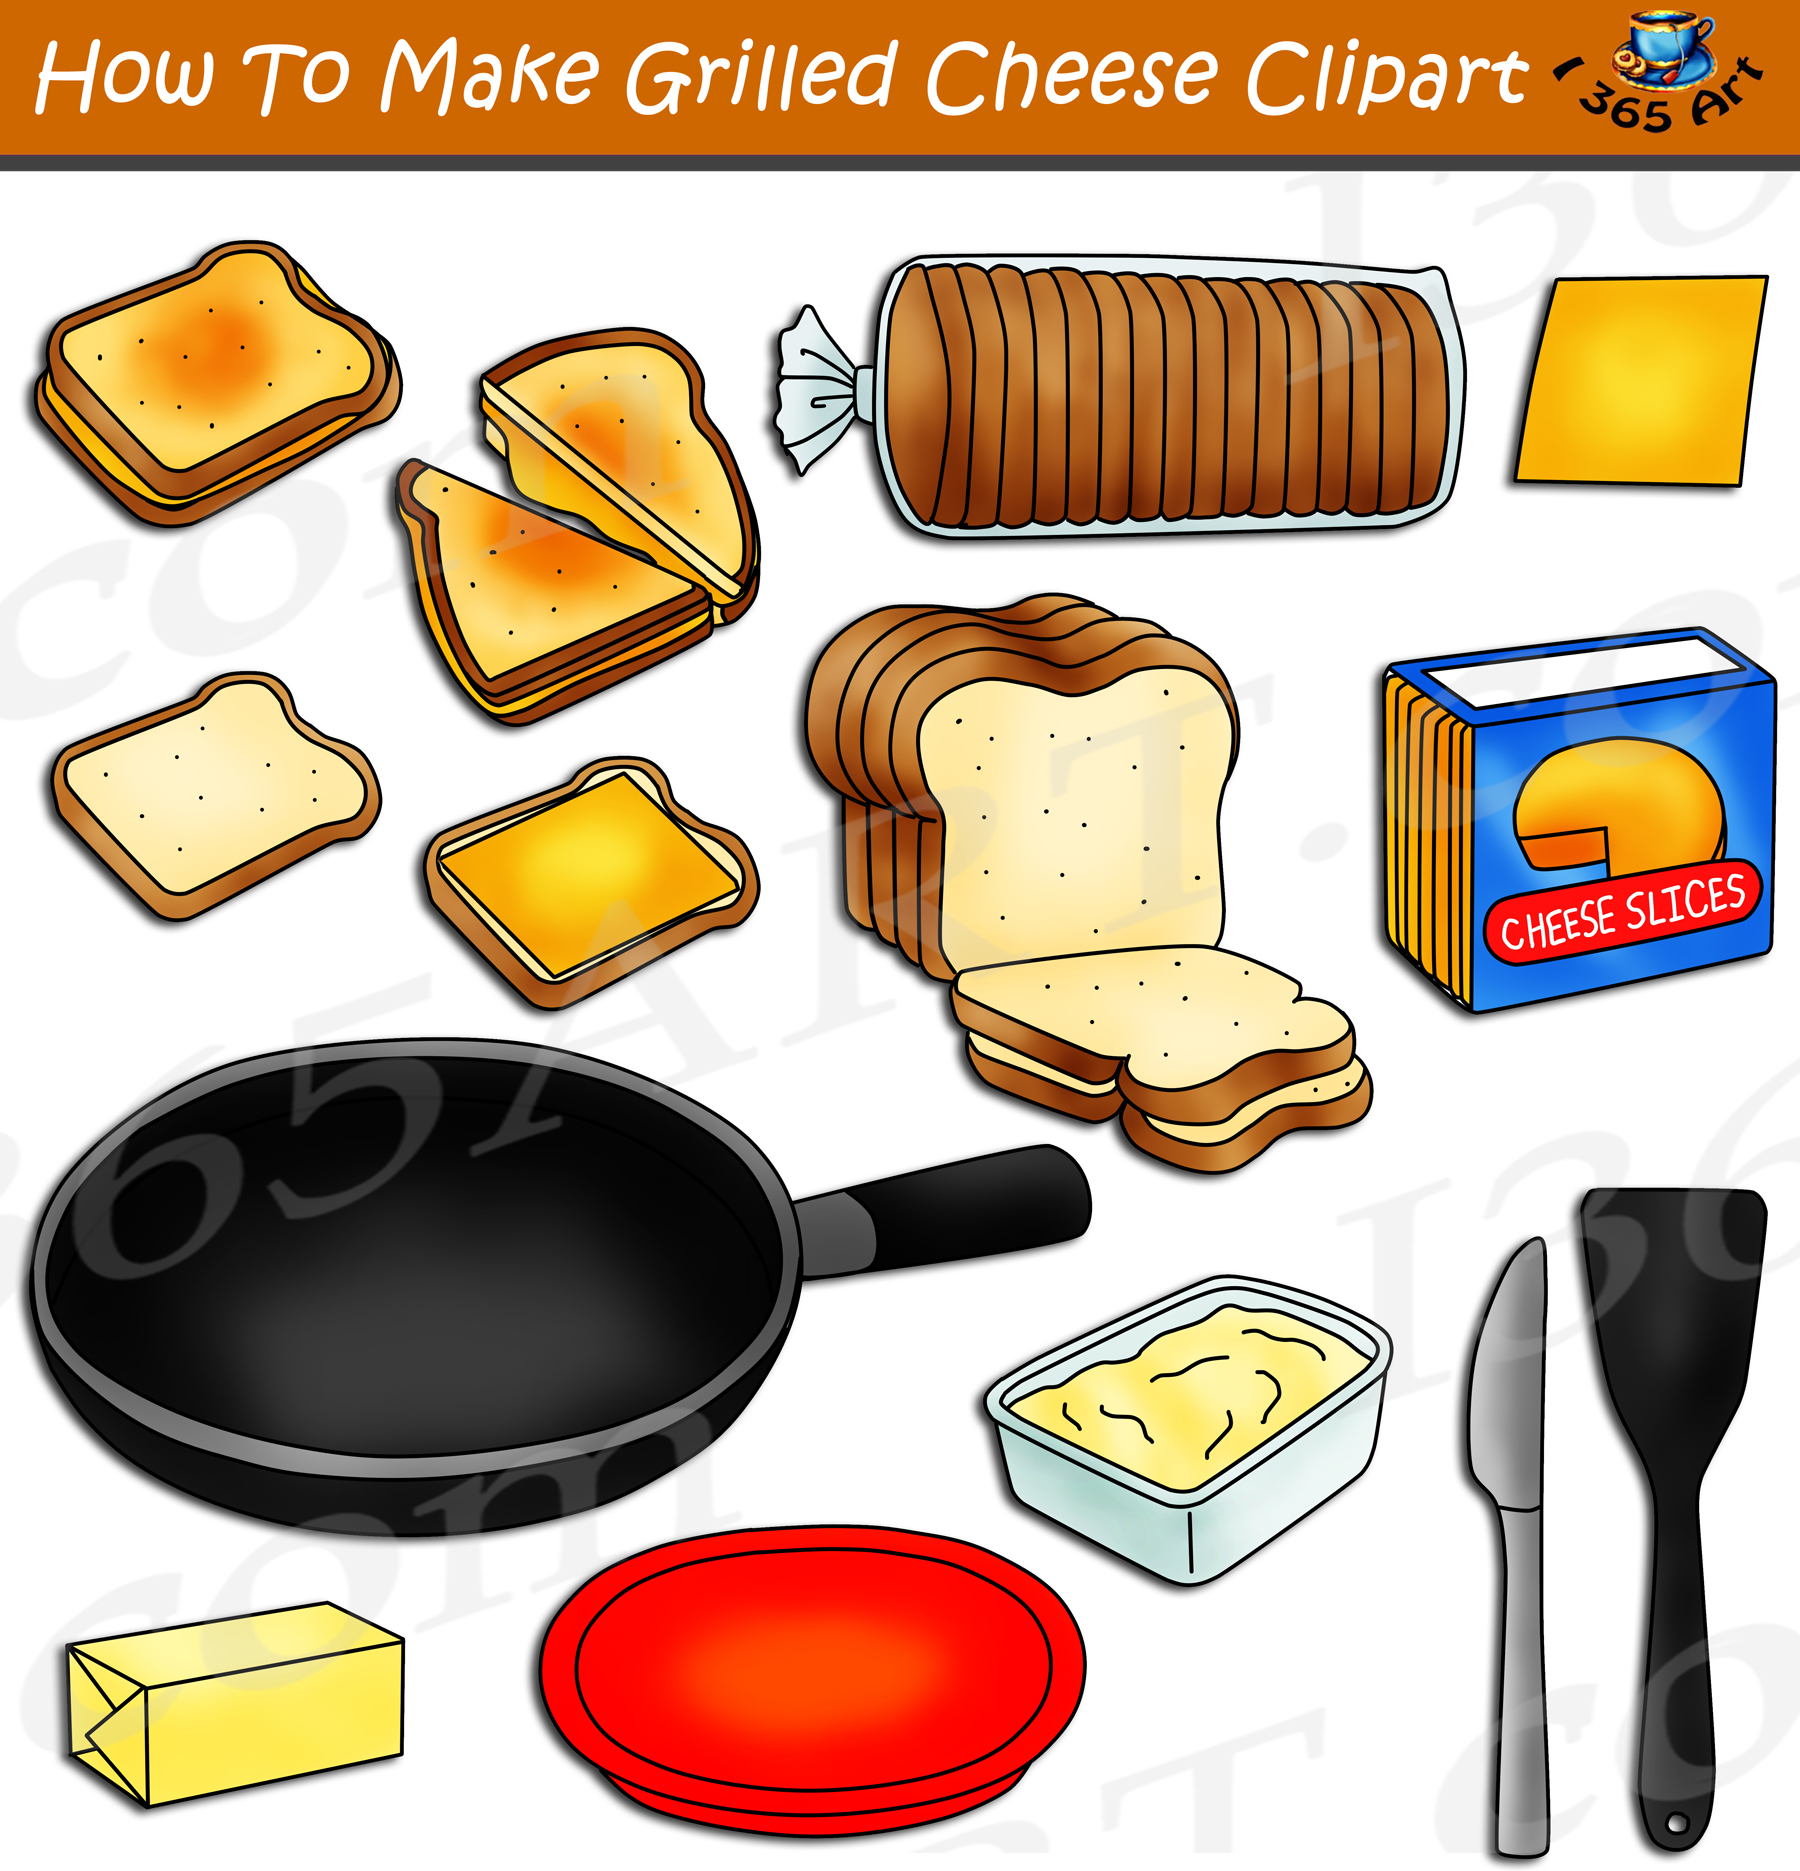 How To Make A Grilled Cheese Sandwich Clipart Download